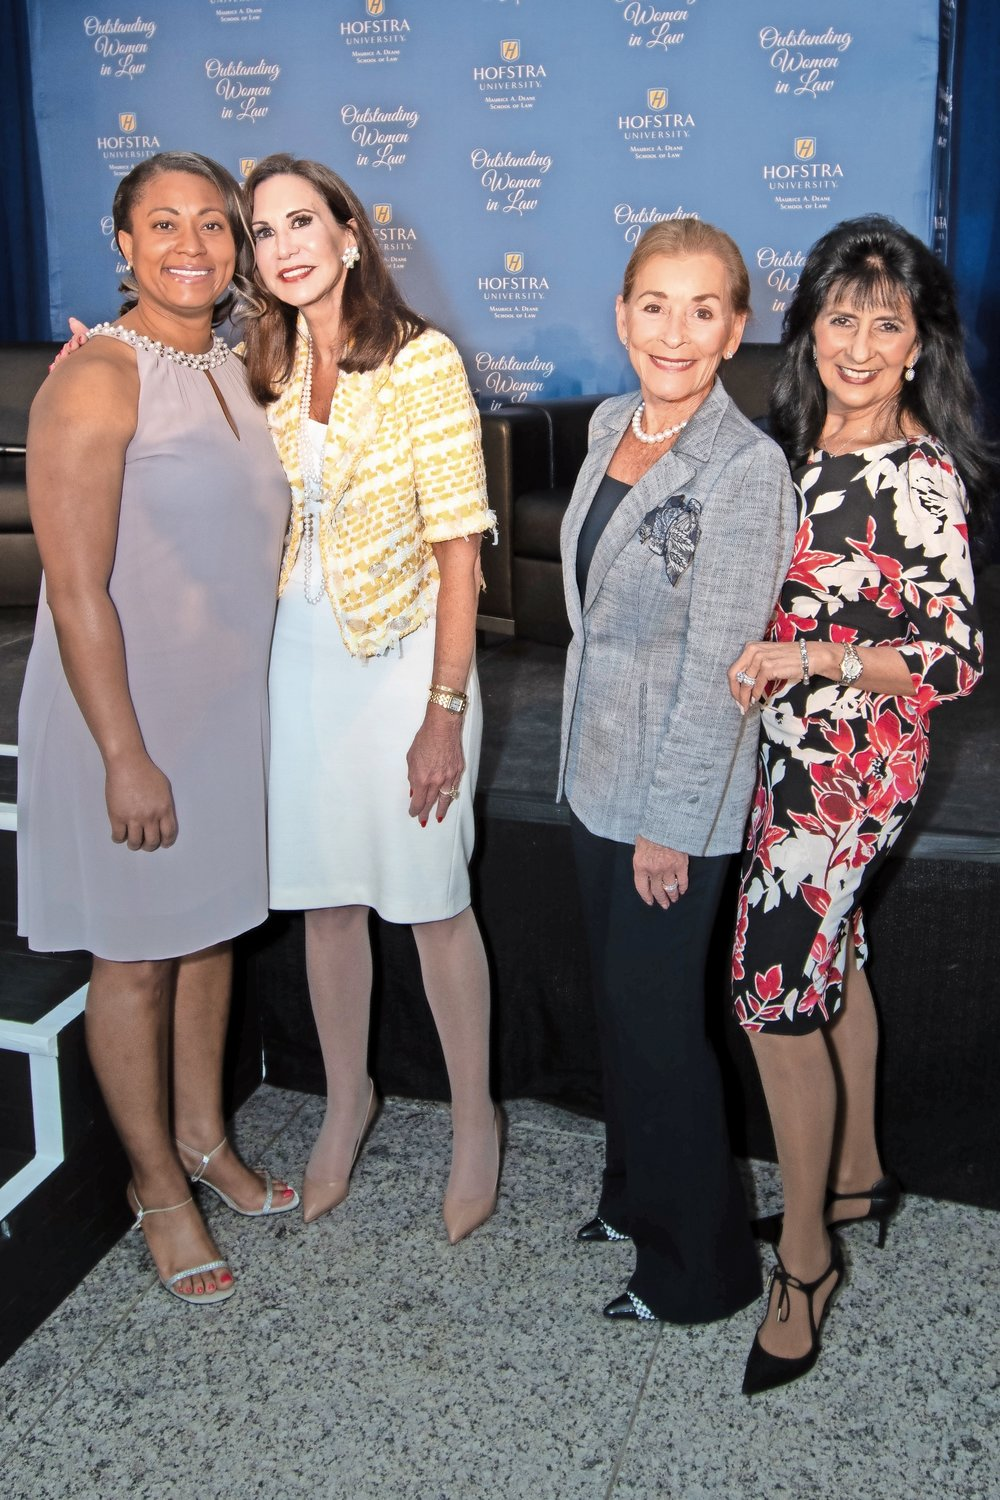 Joining in the event were, from left, Krystal Brumfield, president and CEO, Airport Minority Advisory Council; Judge Gail Prudenti, dean of Hofstra Law; Judge Judy Sheindlin; Lynn Boccio, vice president, Strategic Business and Diversity Relations, Avis Budget Group.